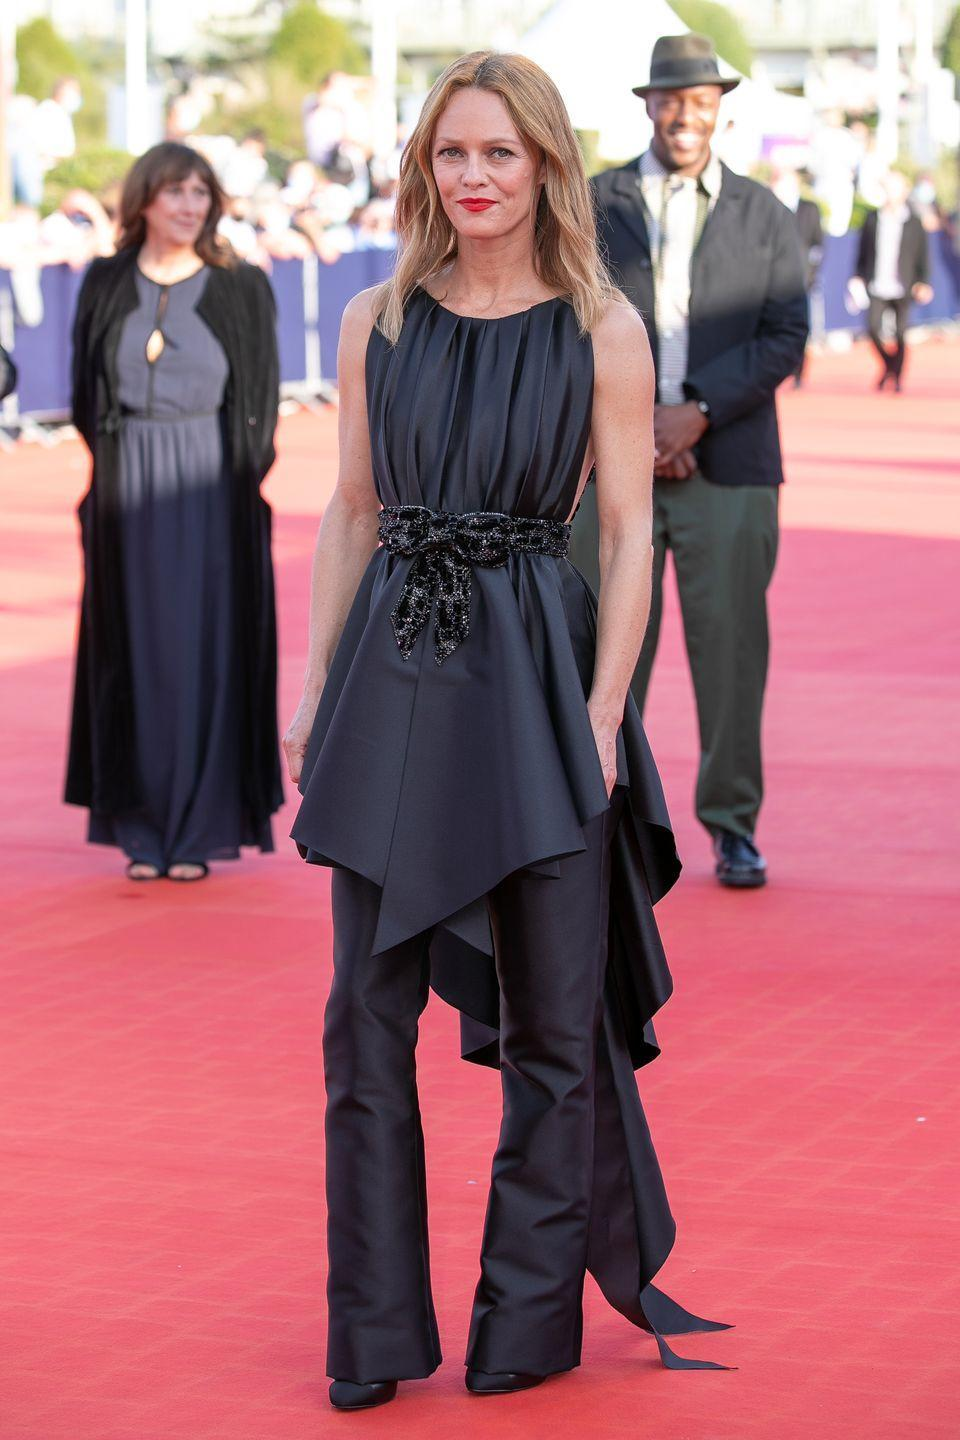 <p><strong>12 September </strong>Vanessa Paradis wore a chic Chanel look, consisting of flared trousers and a flowing top, to the closing ceremony of the Deauville Film Festival.</p>